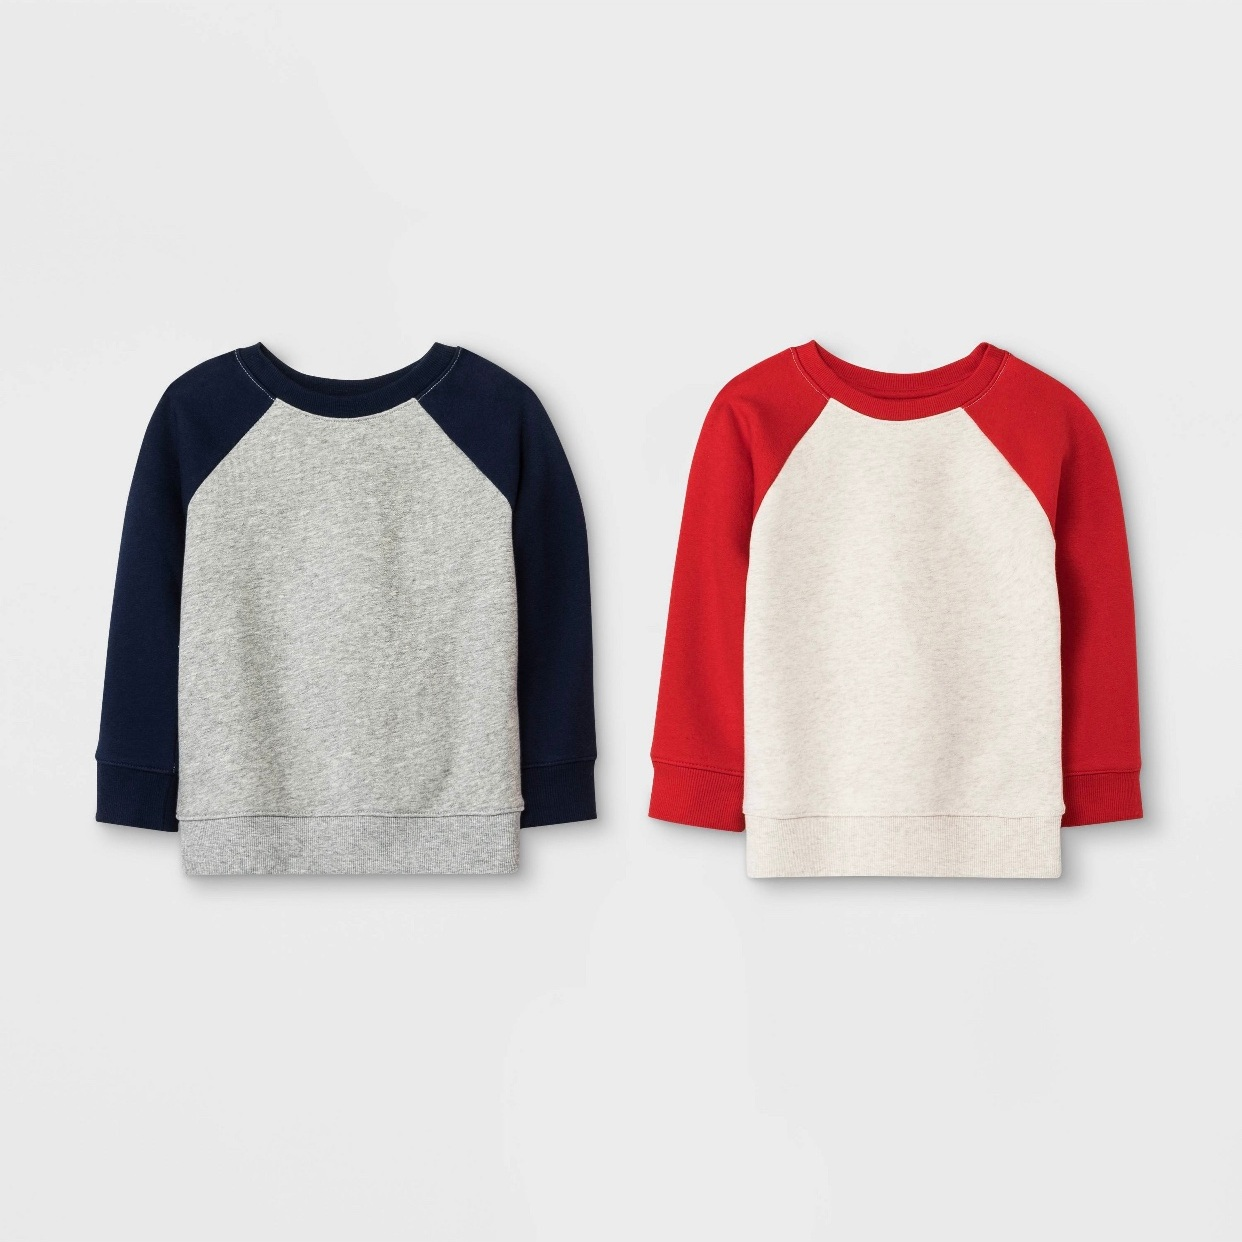 - Such a great deal on this 2 pack of sweatshirts. I'm all about minimalistic classic style.Find them here.